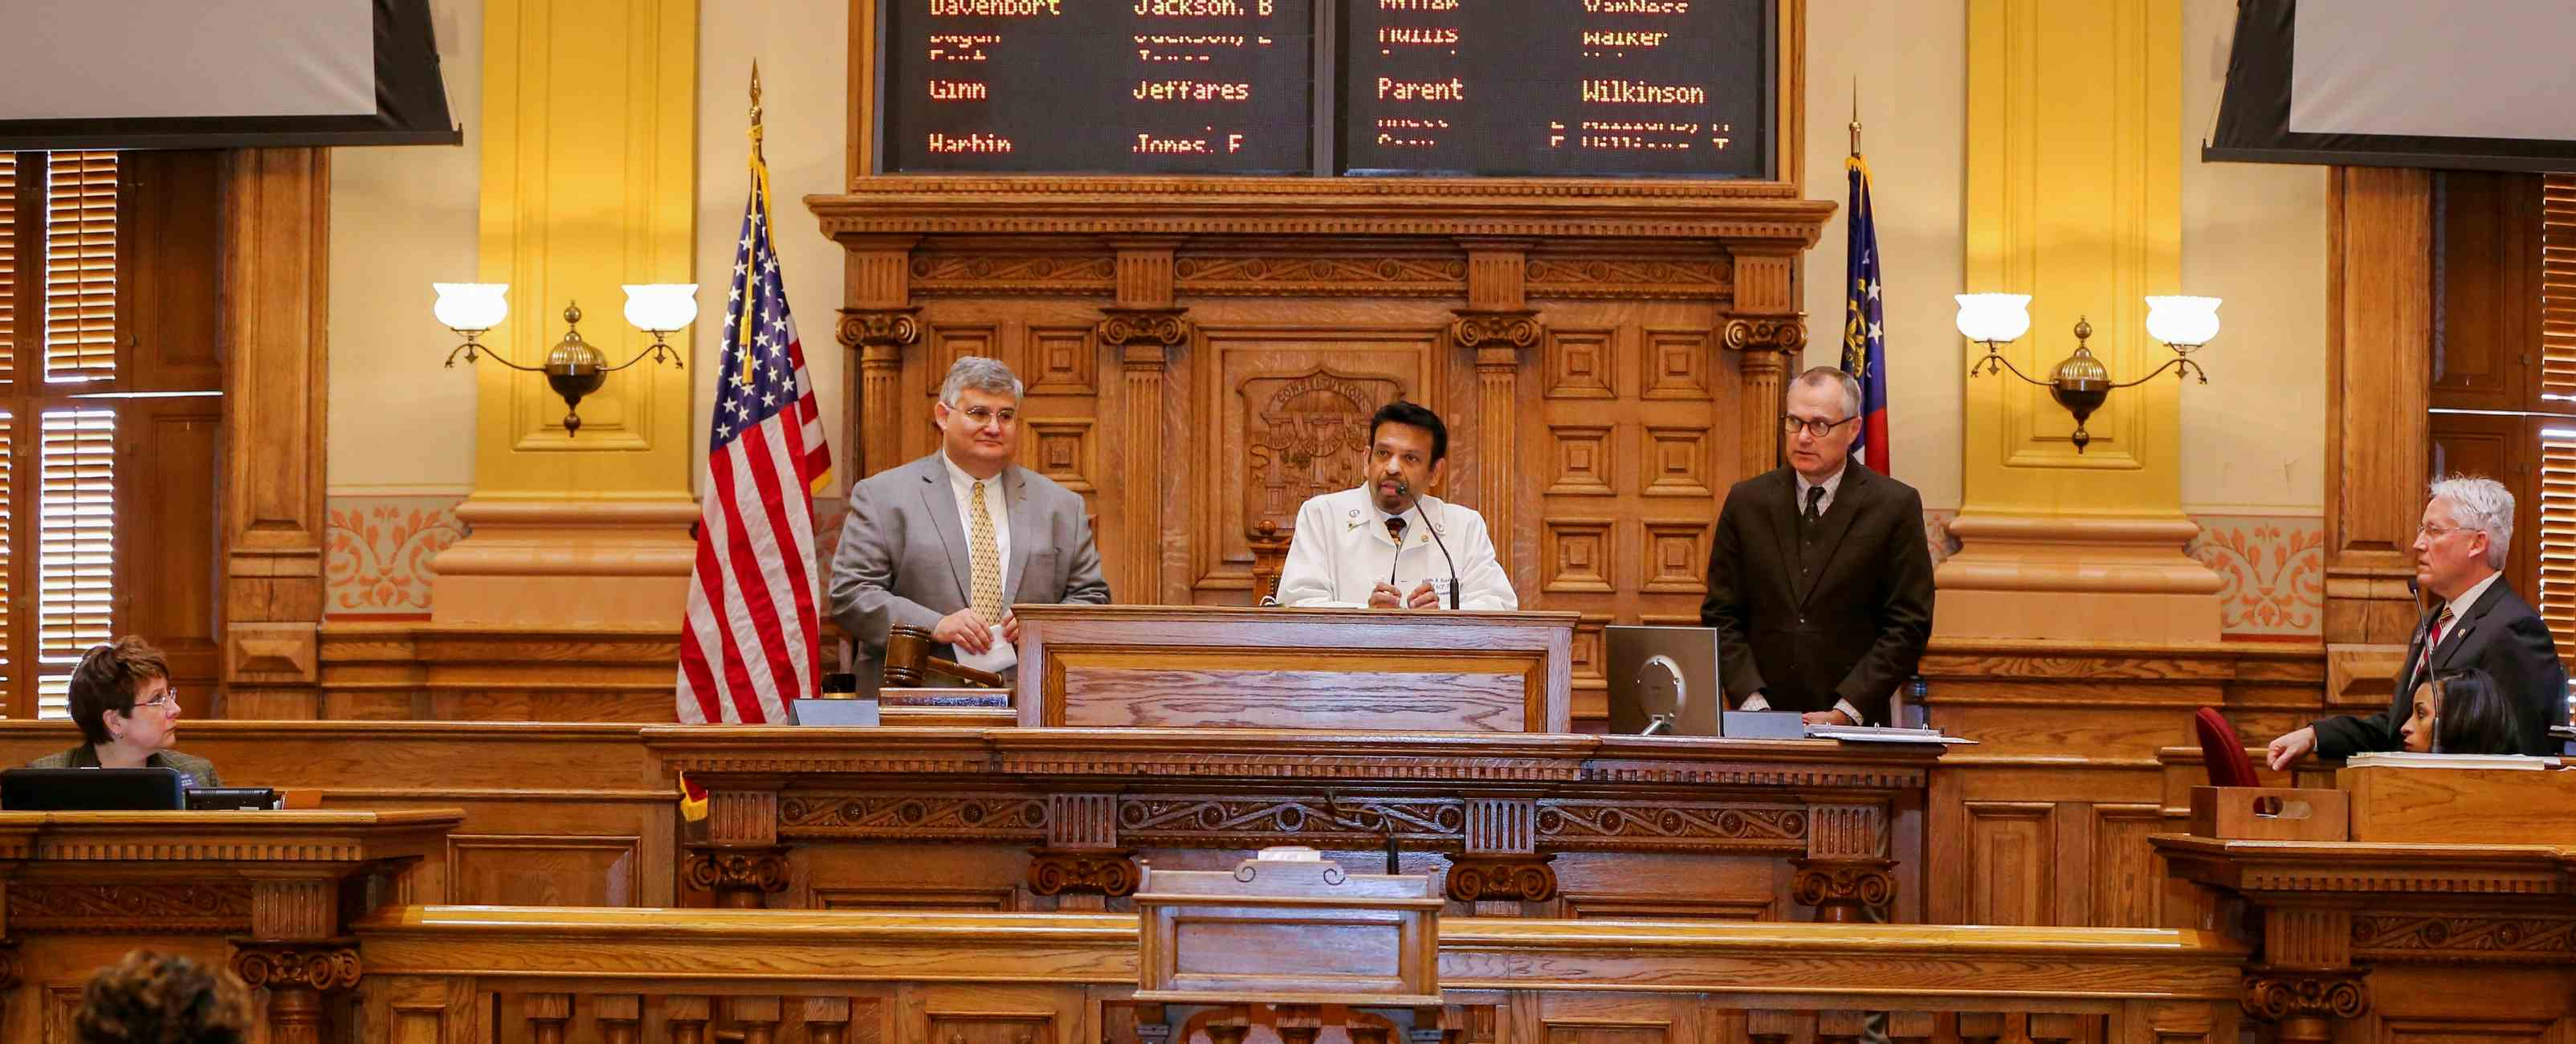 Professor Indran Indrakrishnan honoured by Georgia Senate